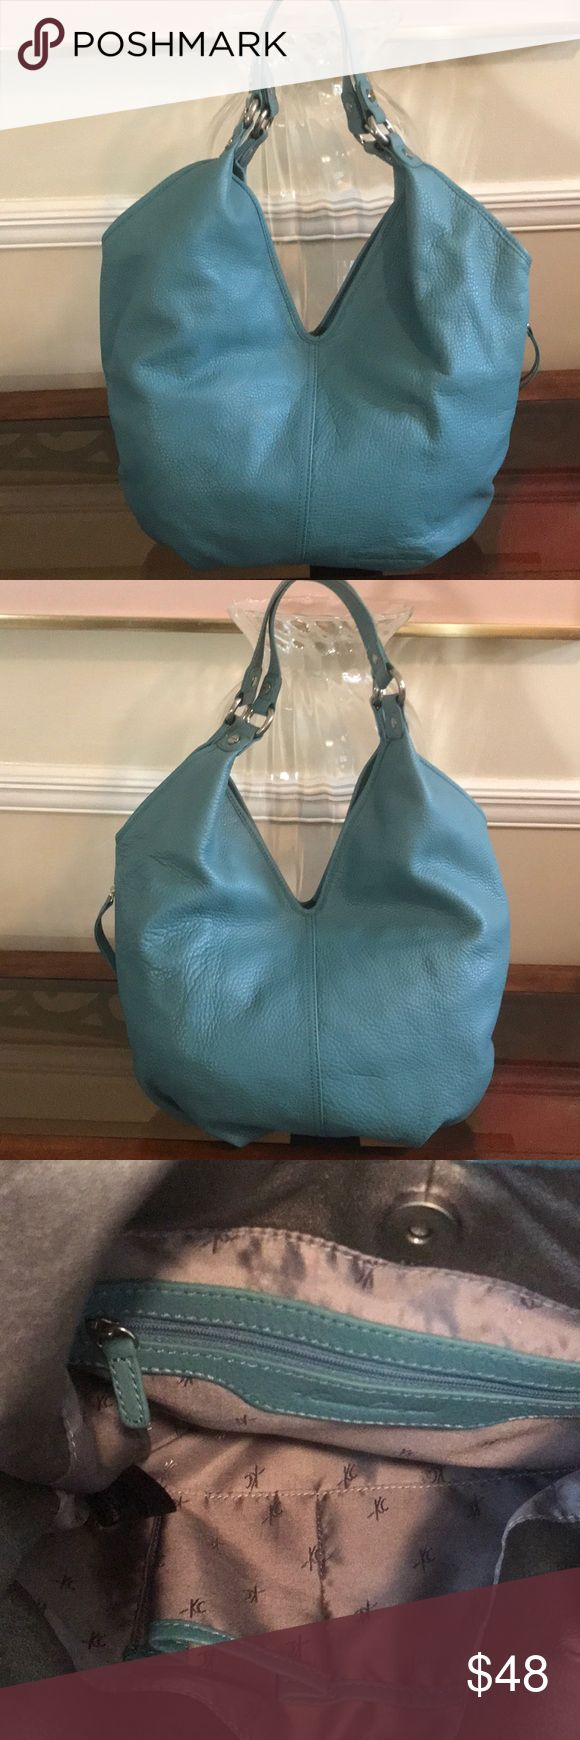 """🔴KENNETH COAL HANDBAG 🔴BEAUTIFUL KENNETH COLE PEBBLED LEATHER IN MUTED TURQUOISE. HARDWARE HAS IS IN A BRUSHED SILVER TONE. ONE SIDE EXTERIOR POCKET. ONE INTERIOR POCKET WITH A CELL PHONE AND ONE   COMPARTMENT FOR FEW ESSENTIALS INTERIOR IS CLEAN. IT HAS ONE TINY INTERIOR NICK. 🔴PLEASE LOOK AT LAST PHOTO.  WIDEST PART OF BAG IS APPROXIMATELY 17"""". APPROXIMATELY 12""""L HANDLES DROP APPROXIMATELY 12"""" TO THE """"""""V"""" SHAPE OF BAG. BEAUTIFUL BAG FOR A SUBTLE POP OF COLOR. Kenneth Cole Bags"""